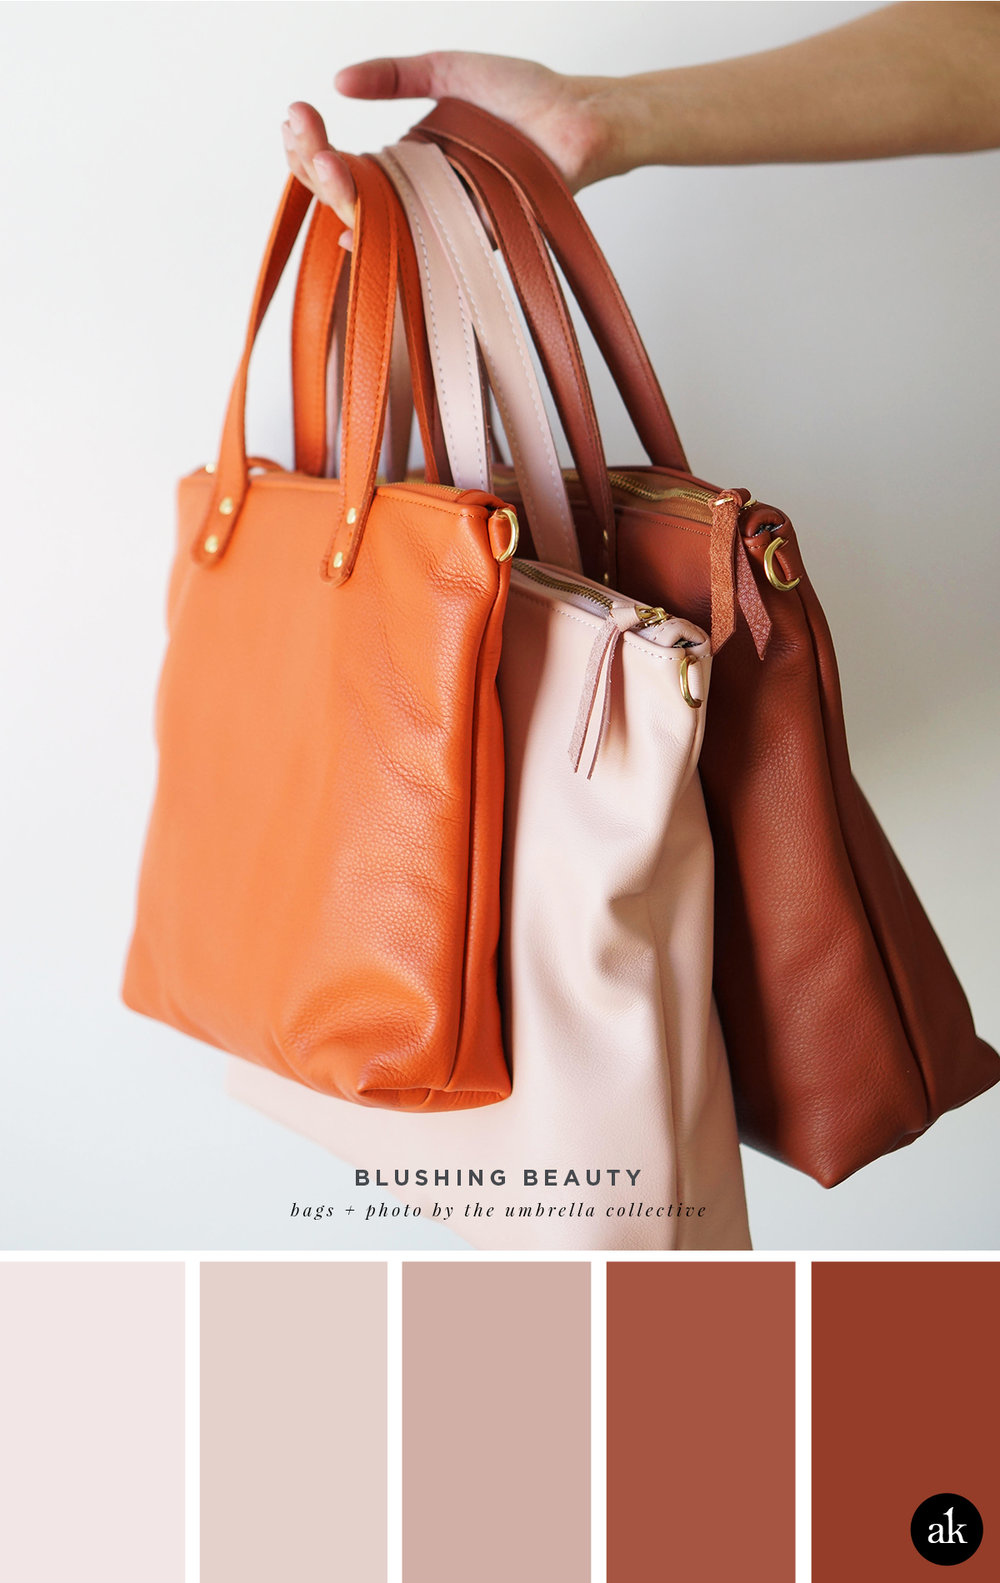 a handmade-handbag-inspired color palette // blush, rust, (tangerine) // handmade leather day bags by The Umbrella Collective